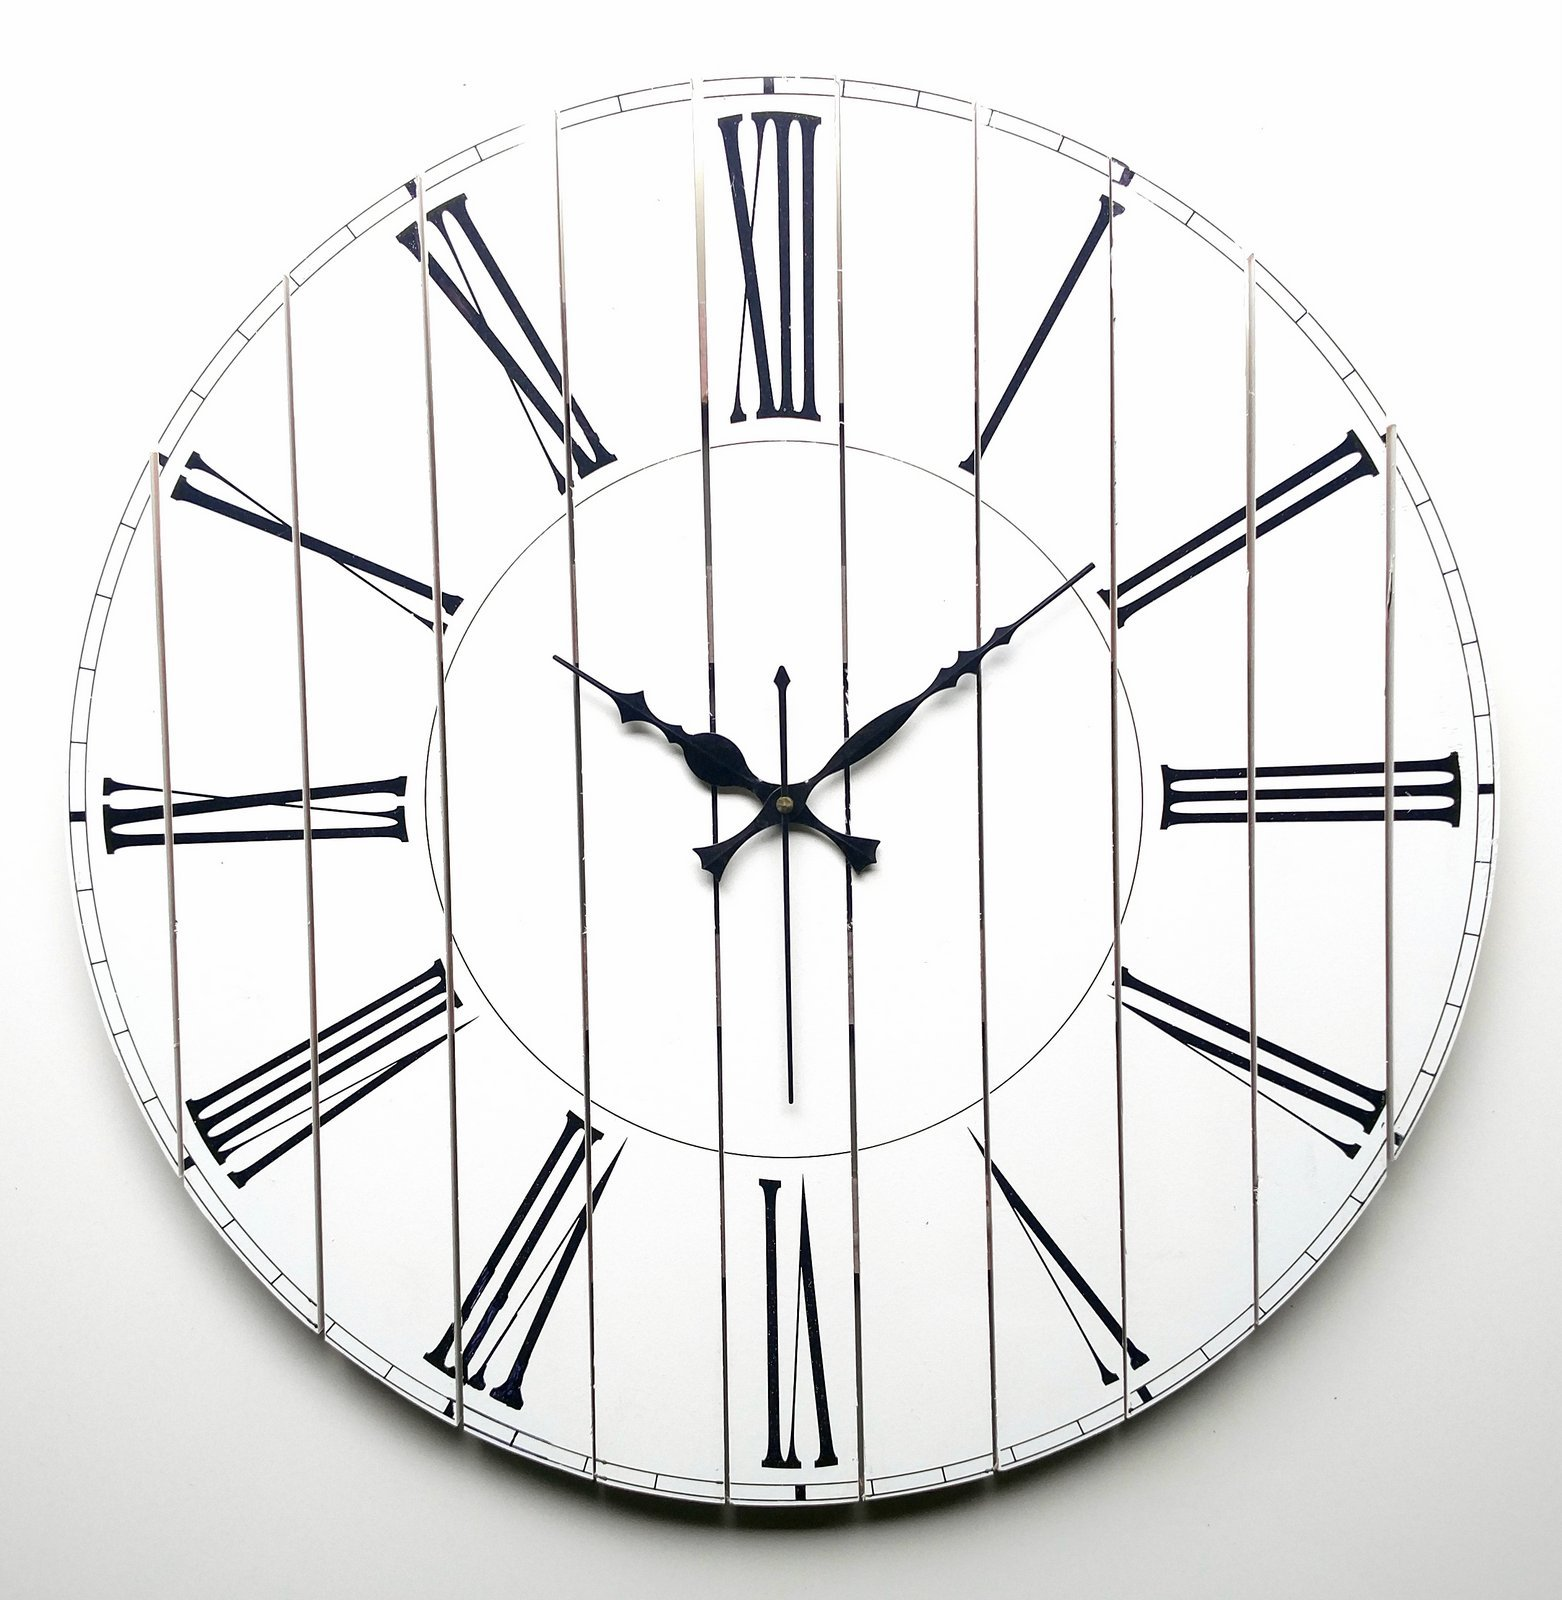 Big Wall Clocks For Home: Buy Big Wall Clocks For Home Online at ...